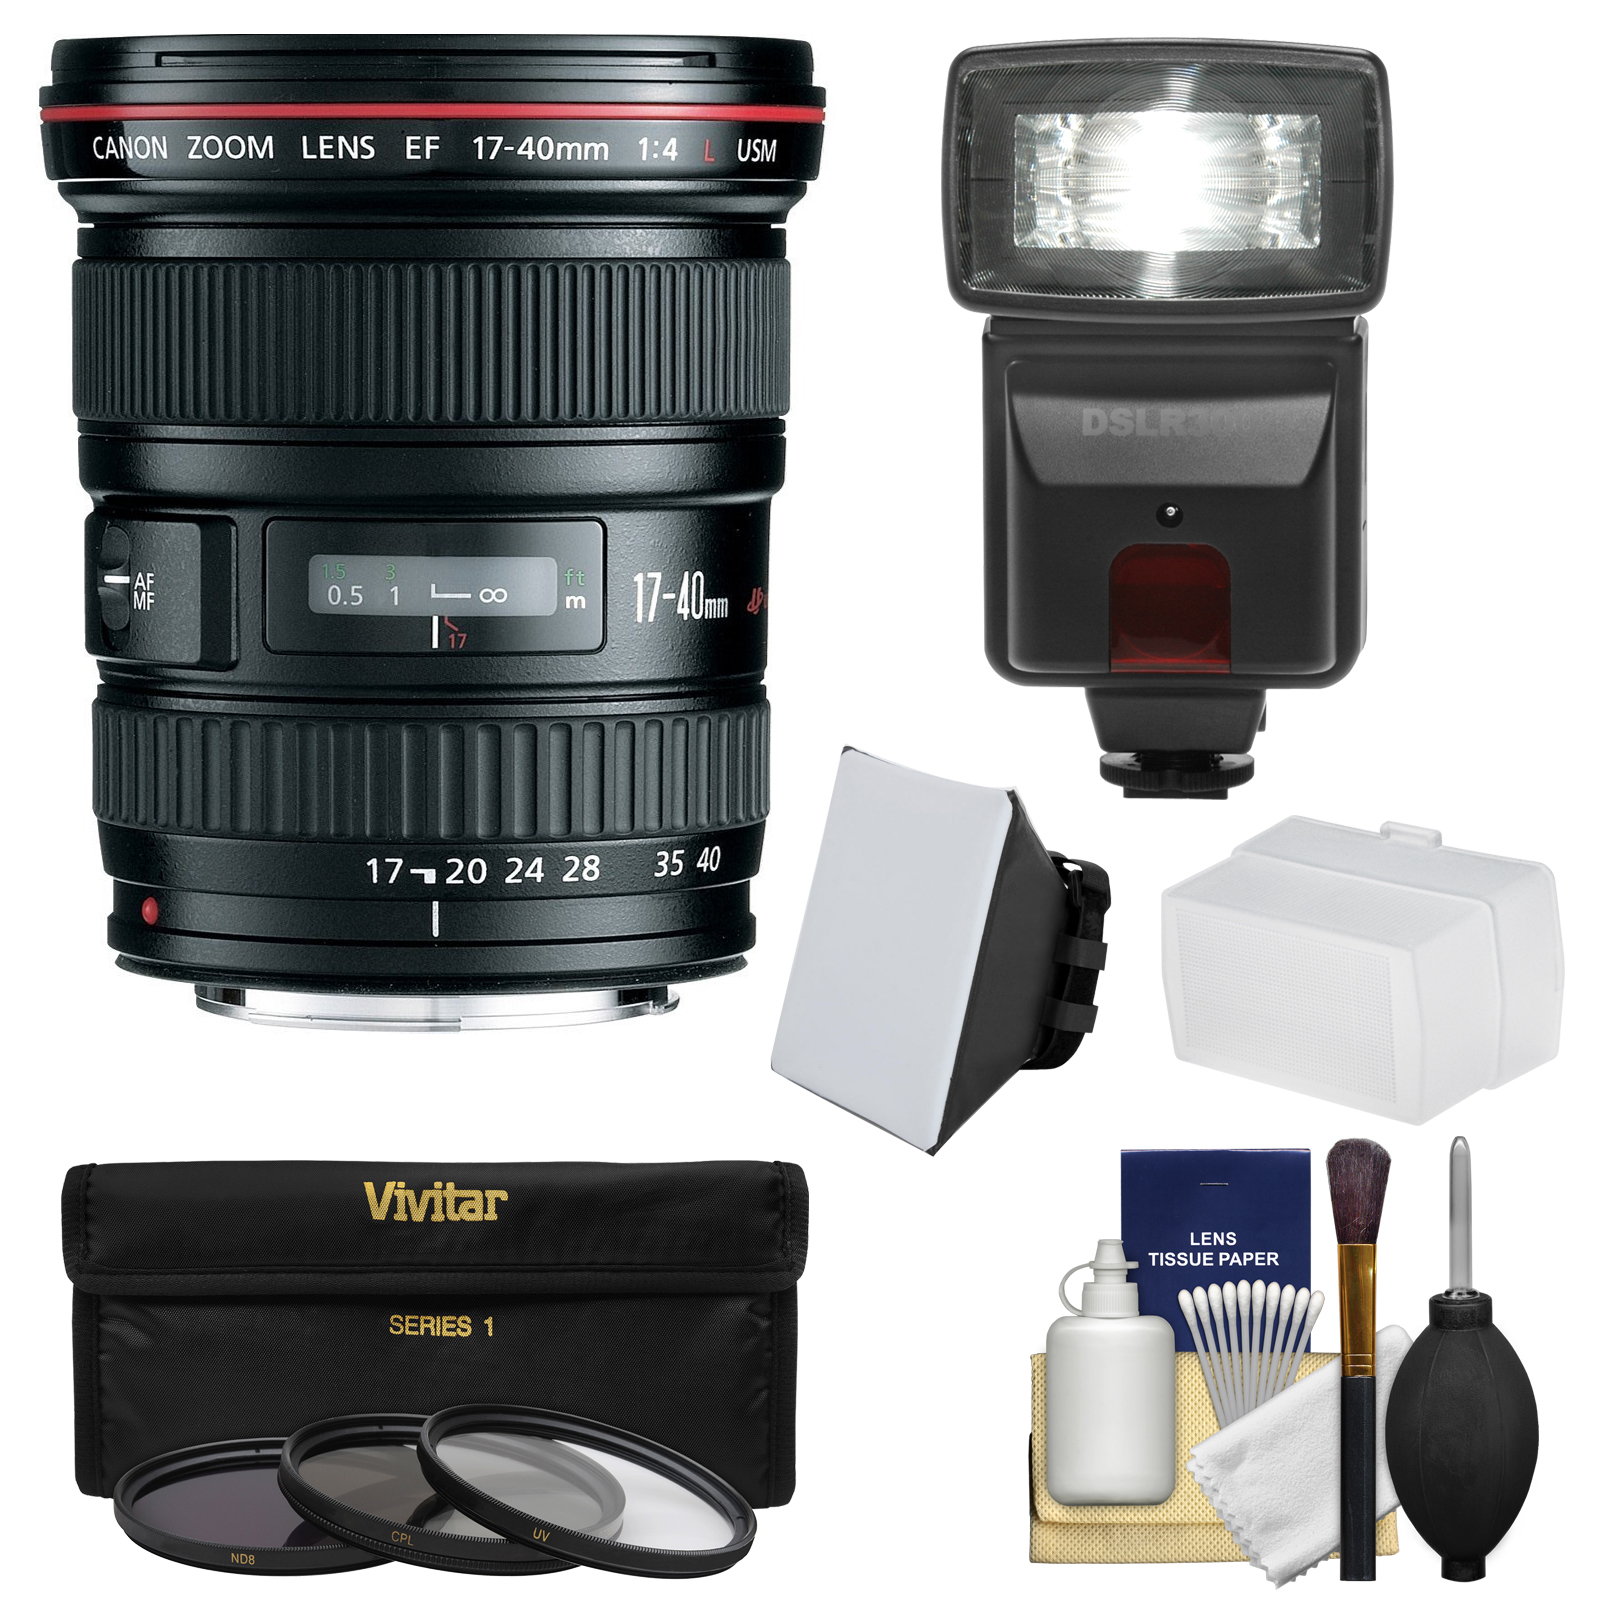 Canon EF 17-40mm f/4 L USM Zoom Lens with 3 Filters + Fla...